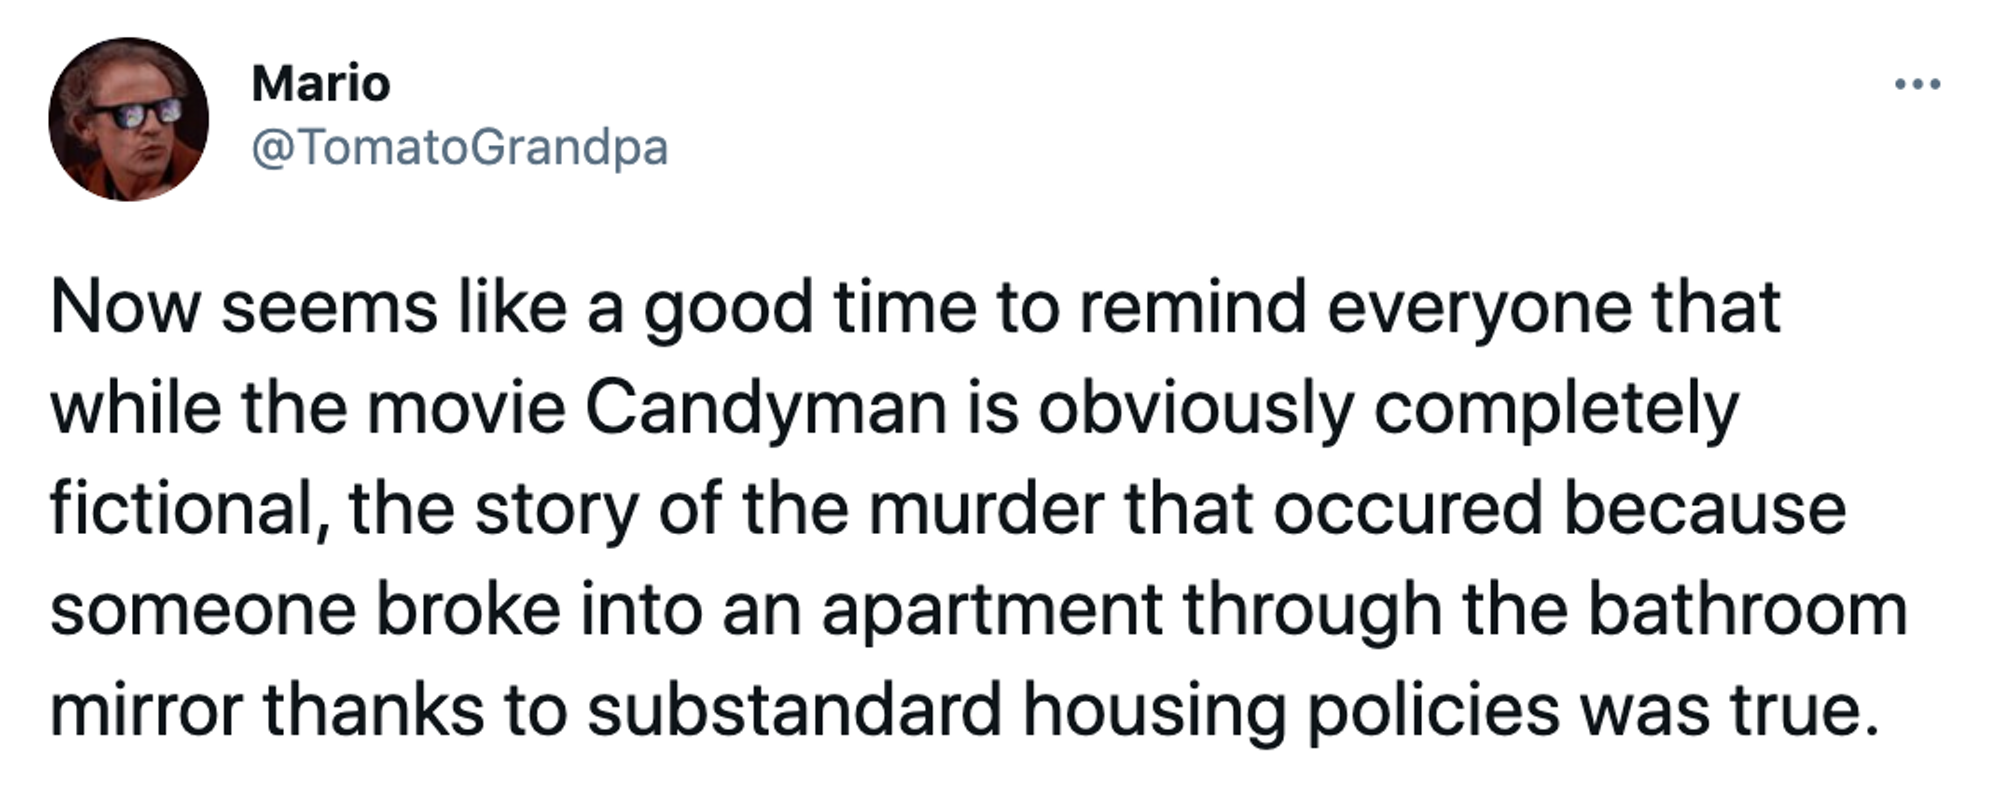 Now seems like a good time to remind everyone that while the movie Candyman is obviously completely fictional, the story of the murder that occured because someone broke into an apartment through the bathroom mirror thanks to substandard housing policies was true.